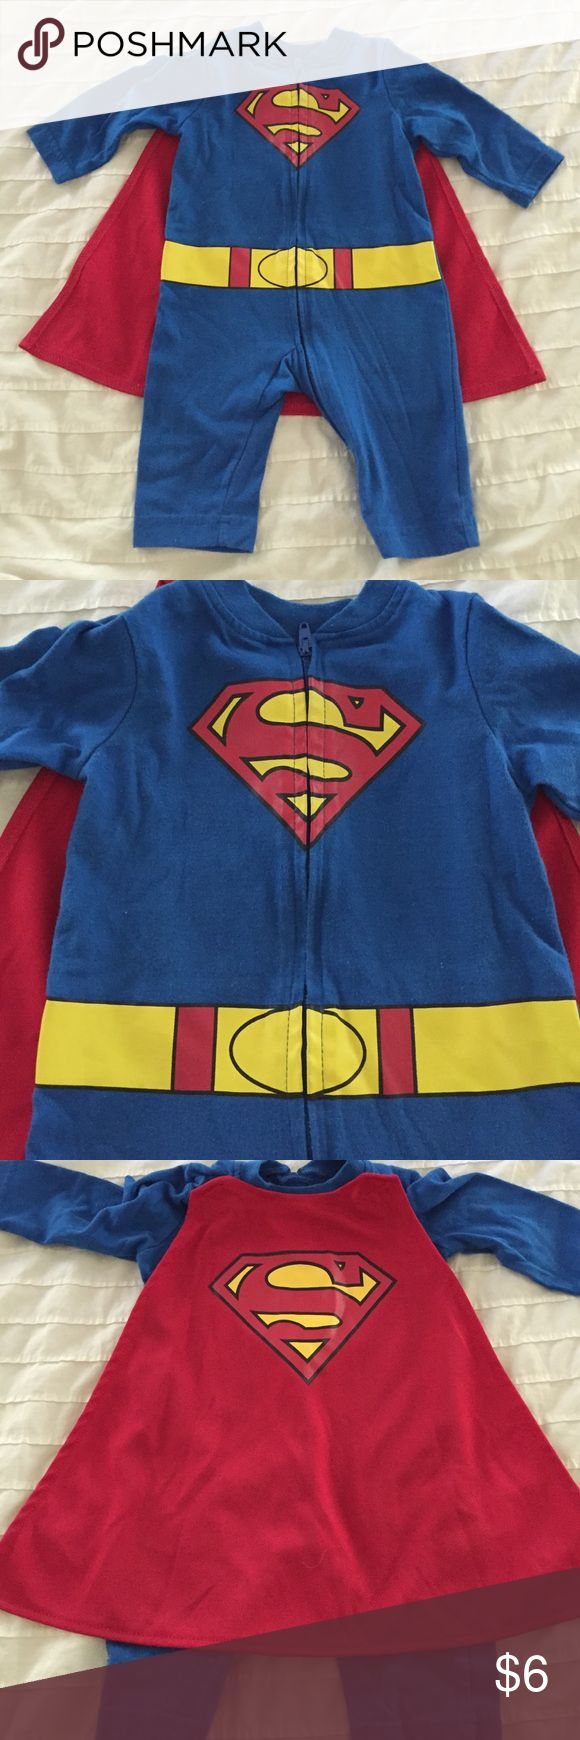 Baby Superman outfit w/ detachable cape 0-3 months Adorable superman outfit for…